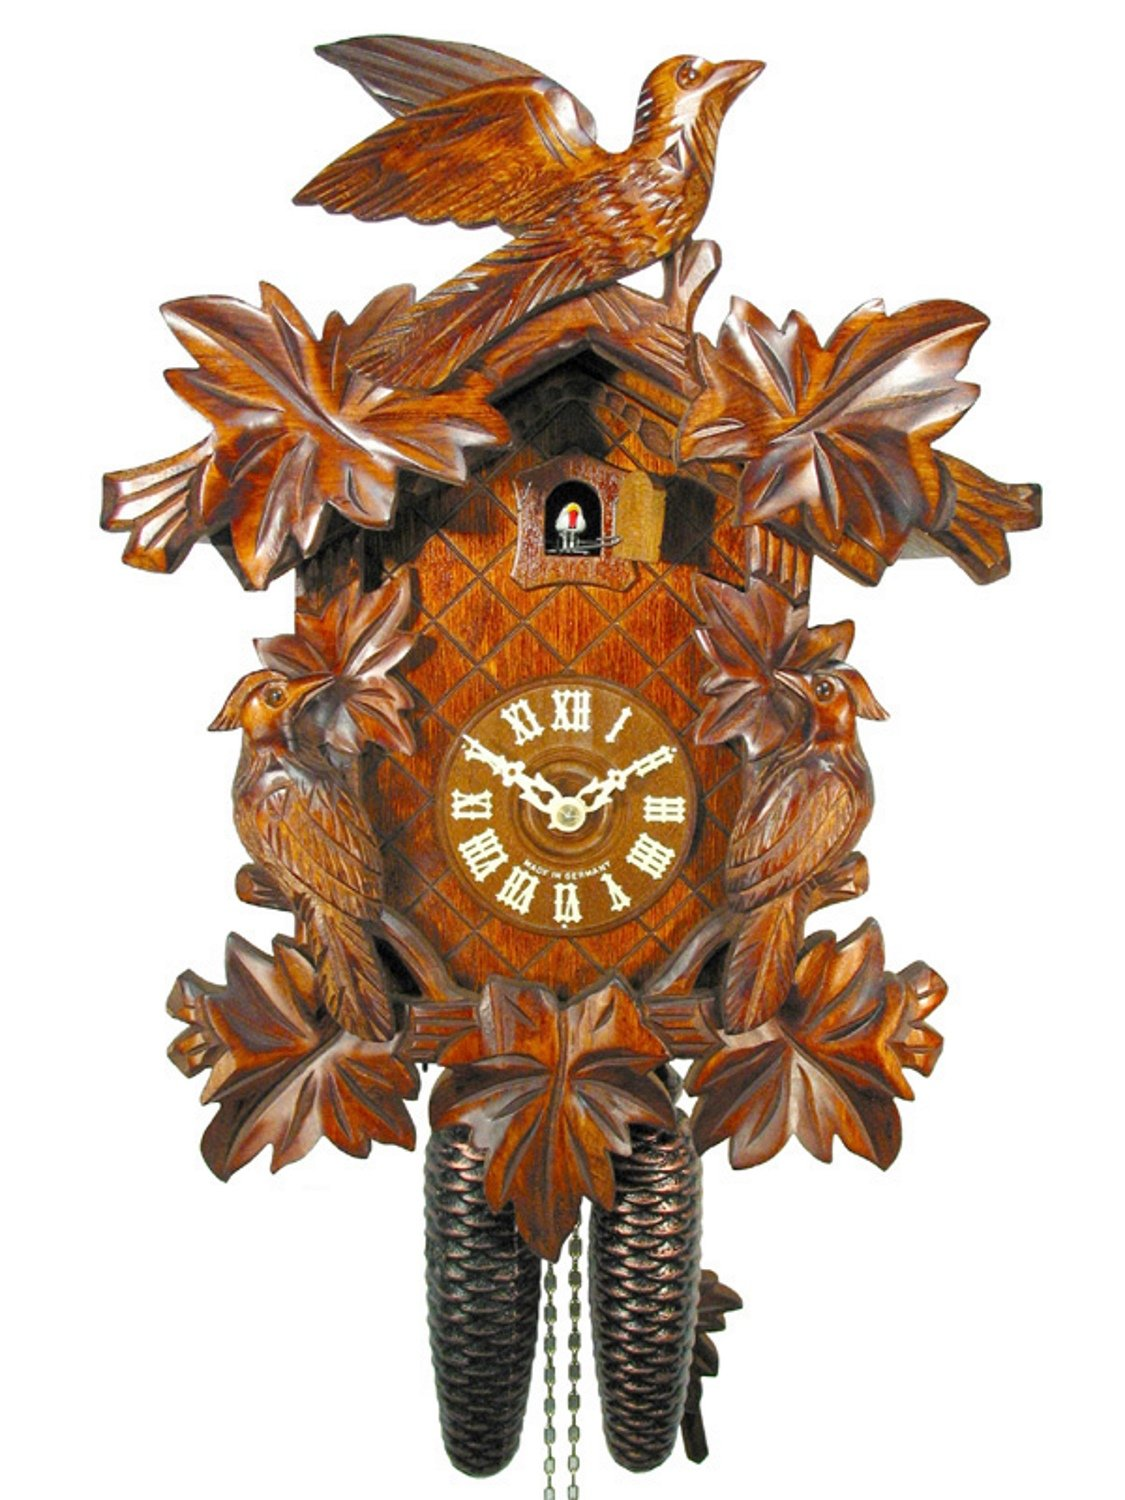 Original German cuckoo-clock (certified), mechanical 8-day movement with 3 birds and 7 leaves, coo-coo clocks from the Black-Forest, Germany by DV-Marketing, original Black Forest cuckoo clocks